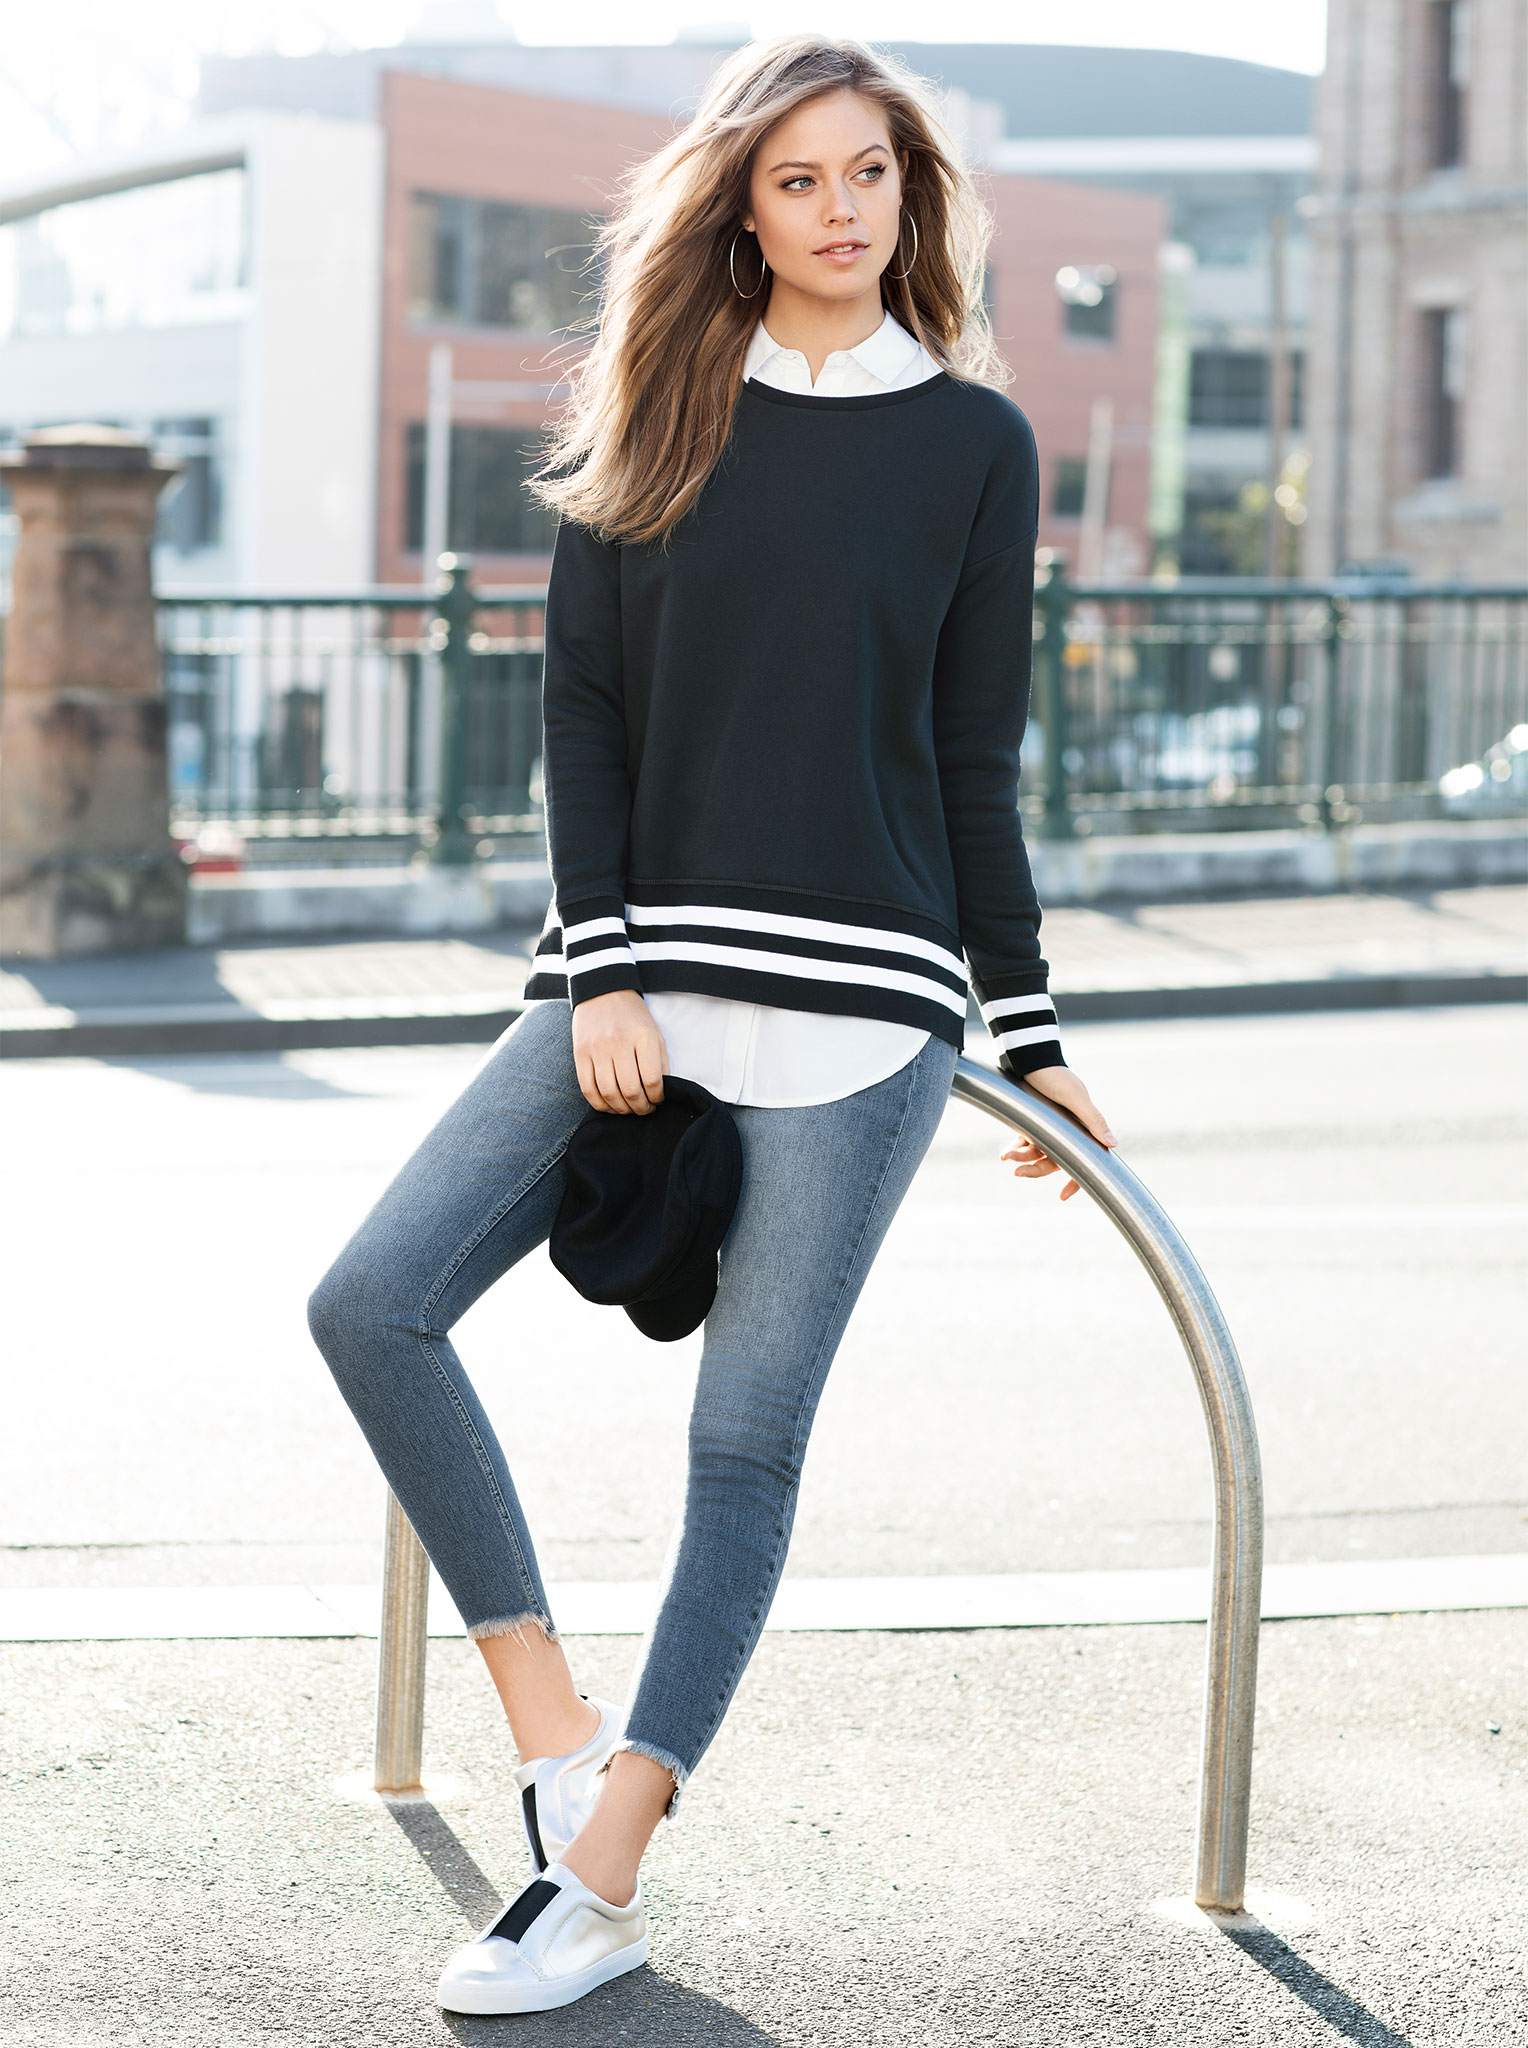 Spring trend Athleisure: pair a sport sweatshirt with denim and a white shirt